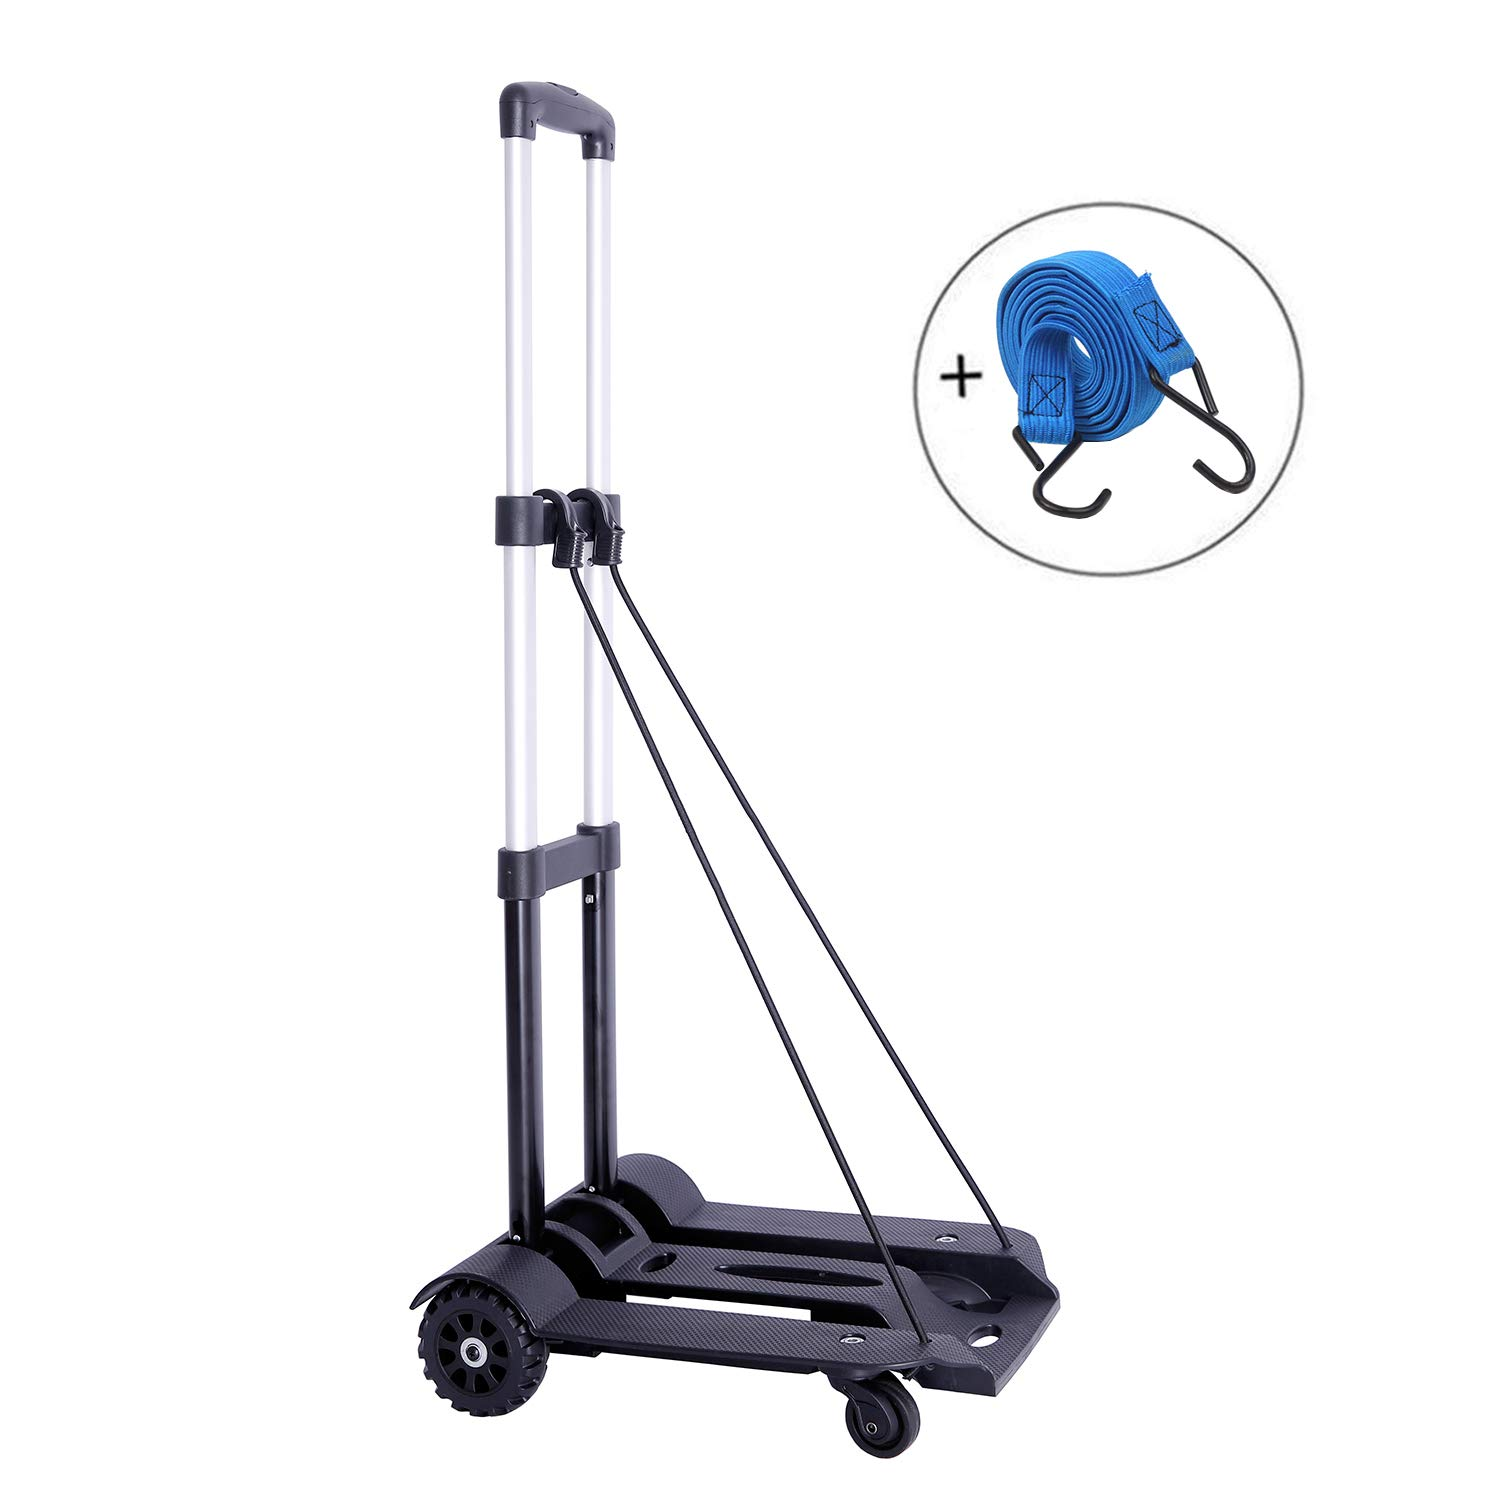 Portable Folding Hand Truck, 75 Kg/165 lbs Heavy Duty 4-Wheel-roate Solid Construction Compact and Lightweight Utility Hand Cart for Luggage, Travel, Auto, Moving and Office Use (4 Wheel-roate)